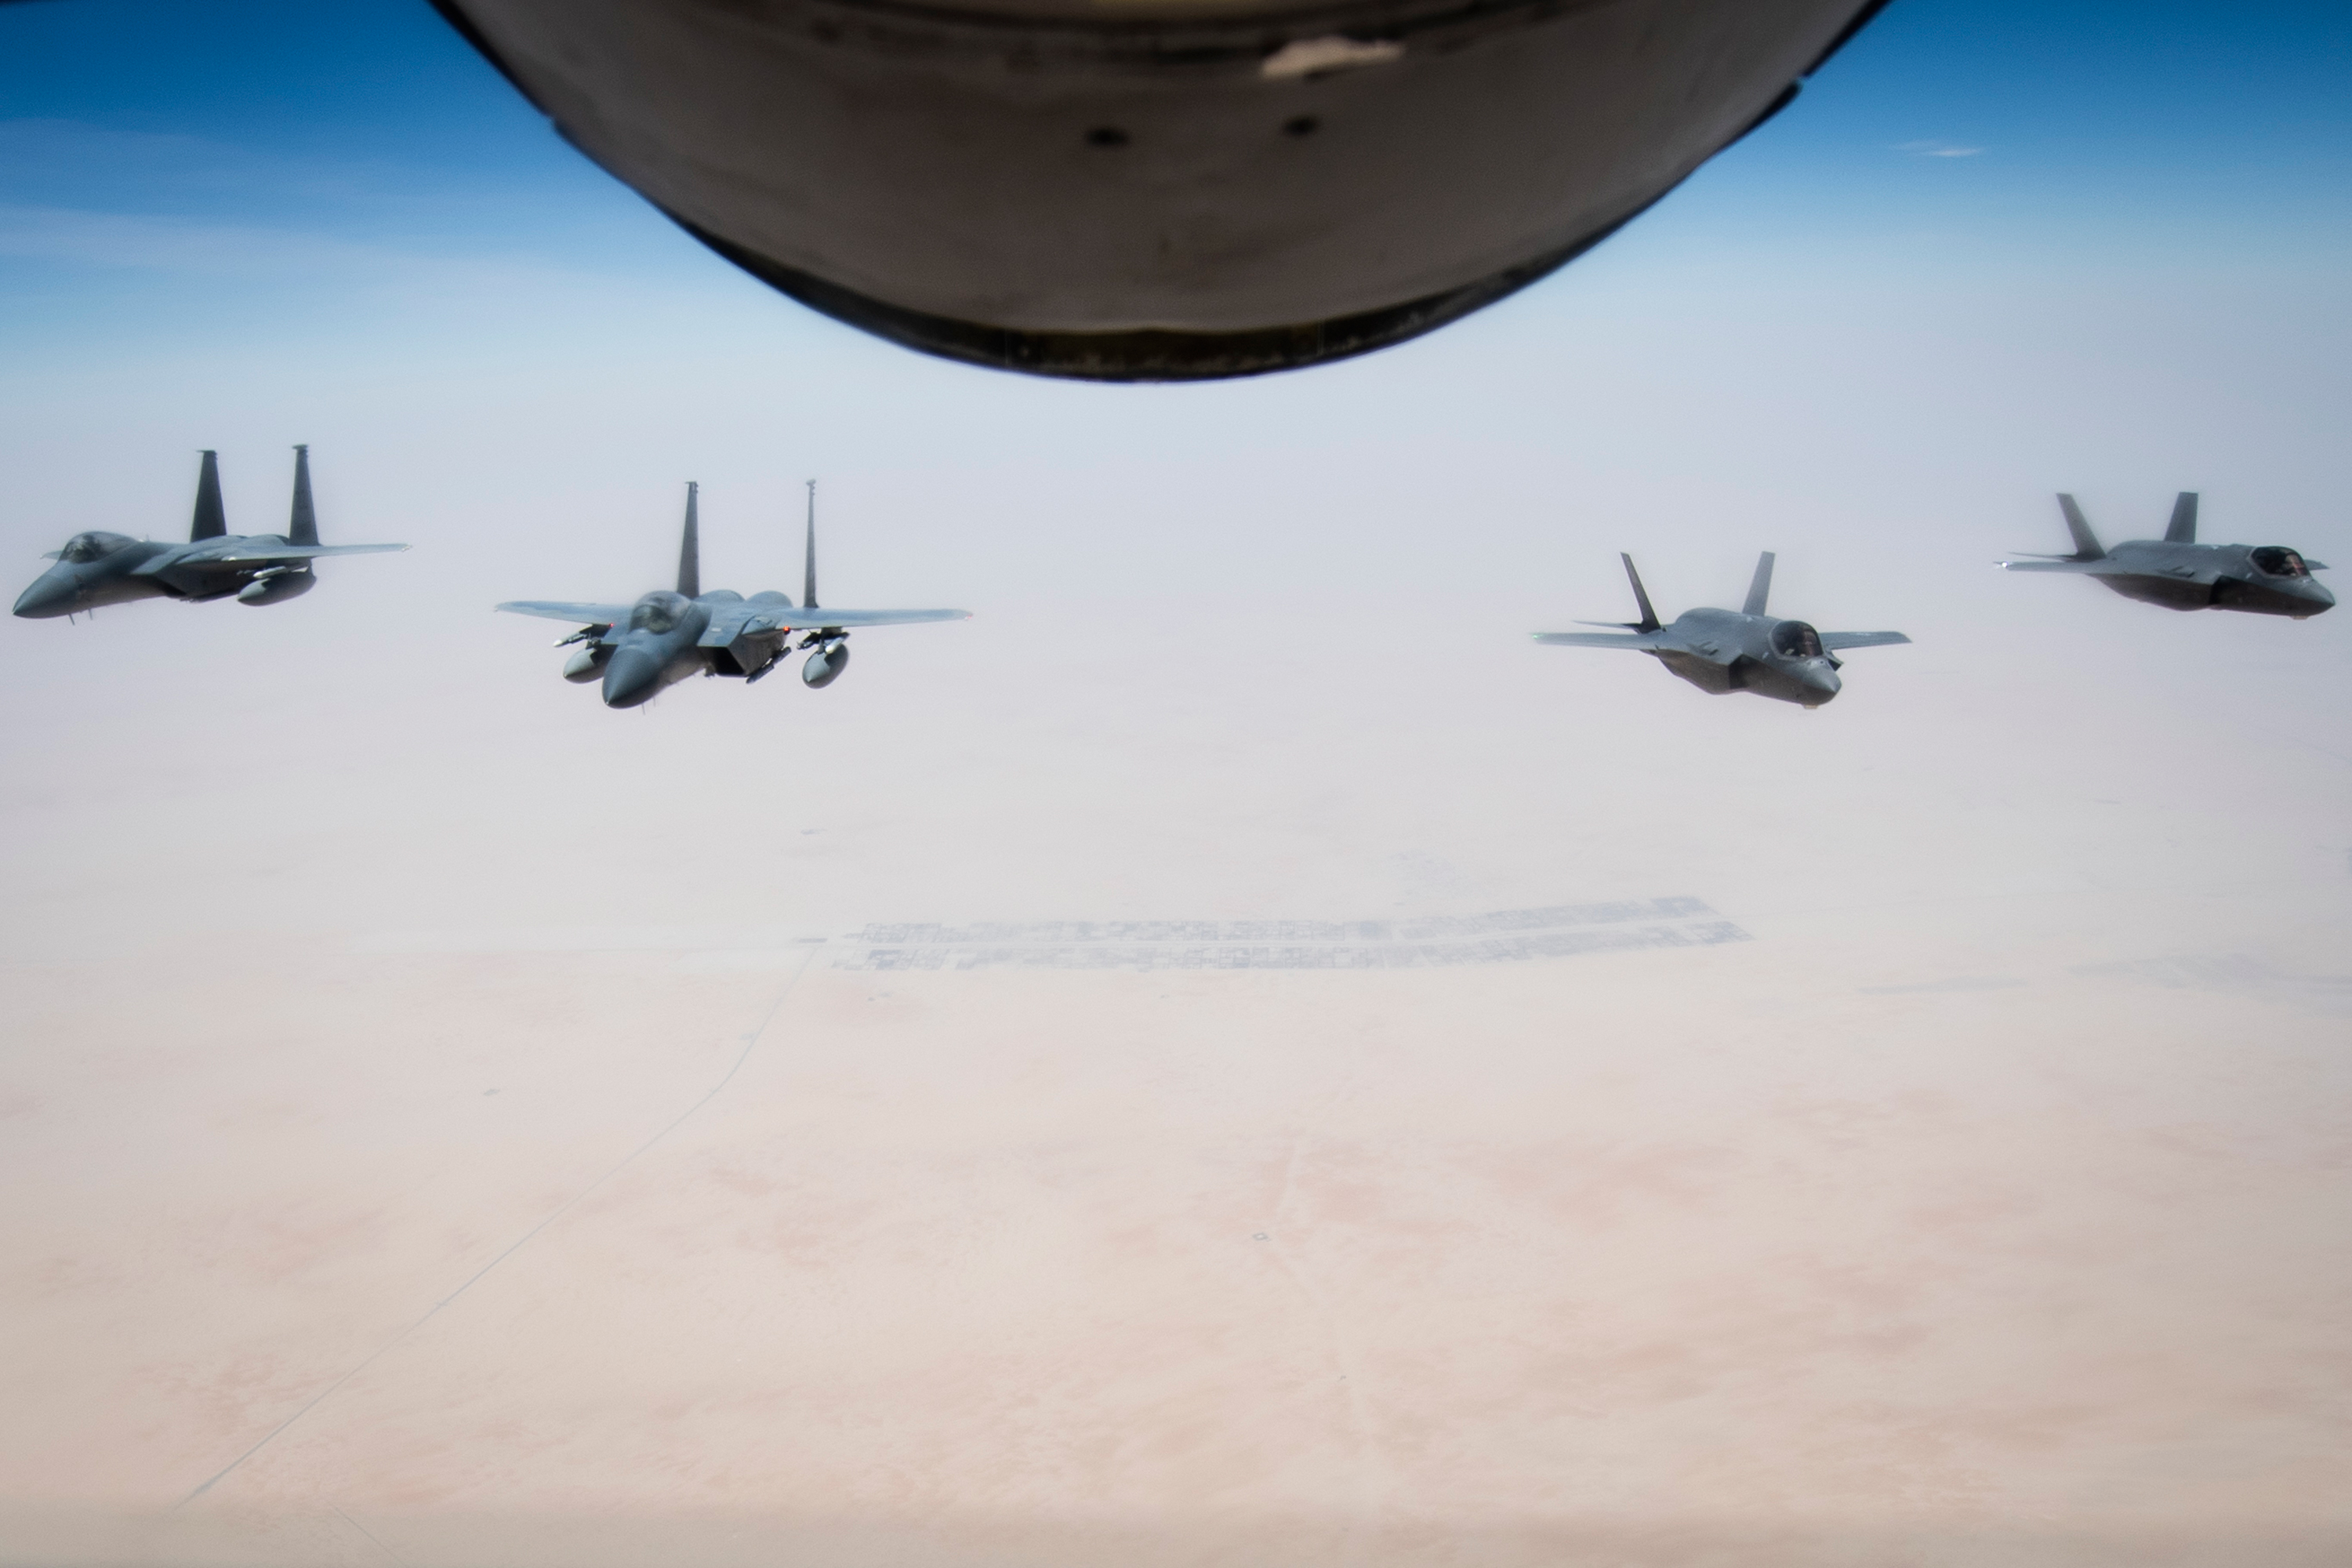 F-35 Joint Strike Fighter Executes 1st Alert Status Drill in the Middle East